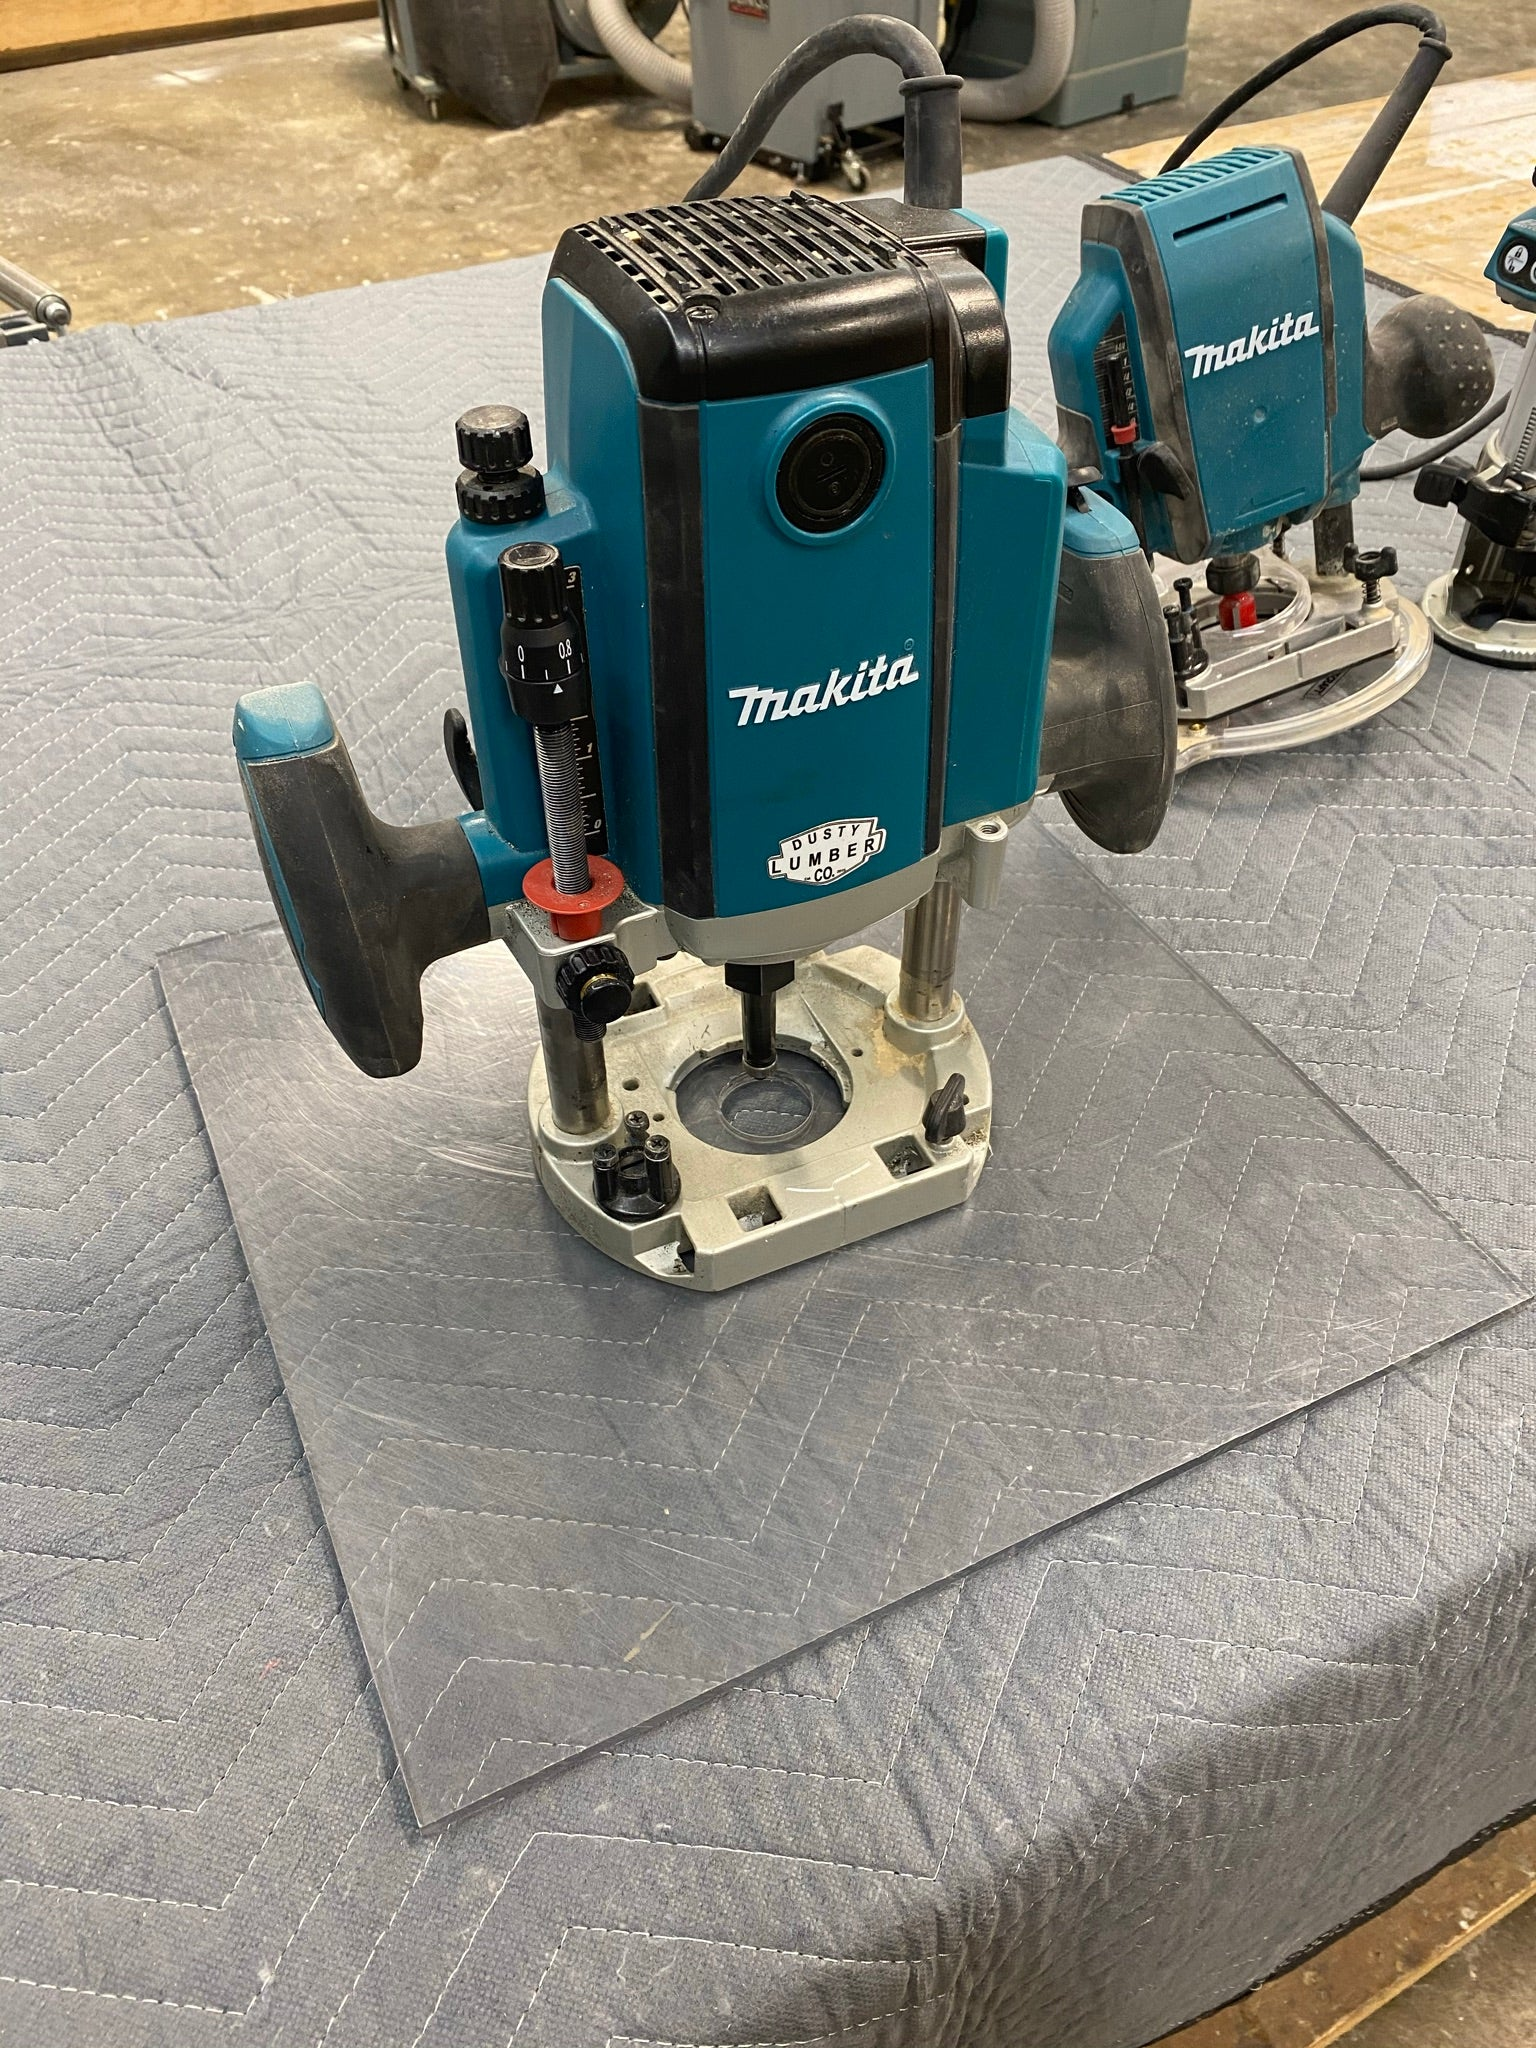 Makita Plunge Router with homemade plexiglass plate